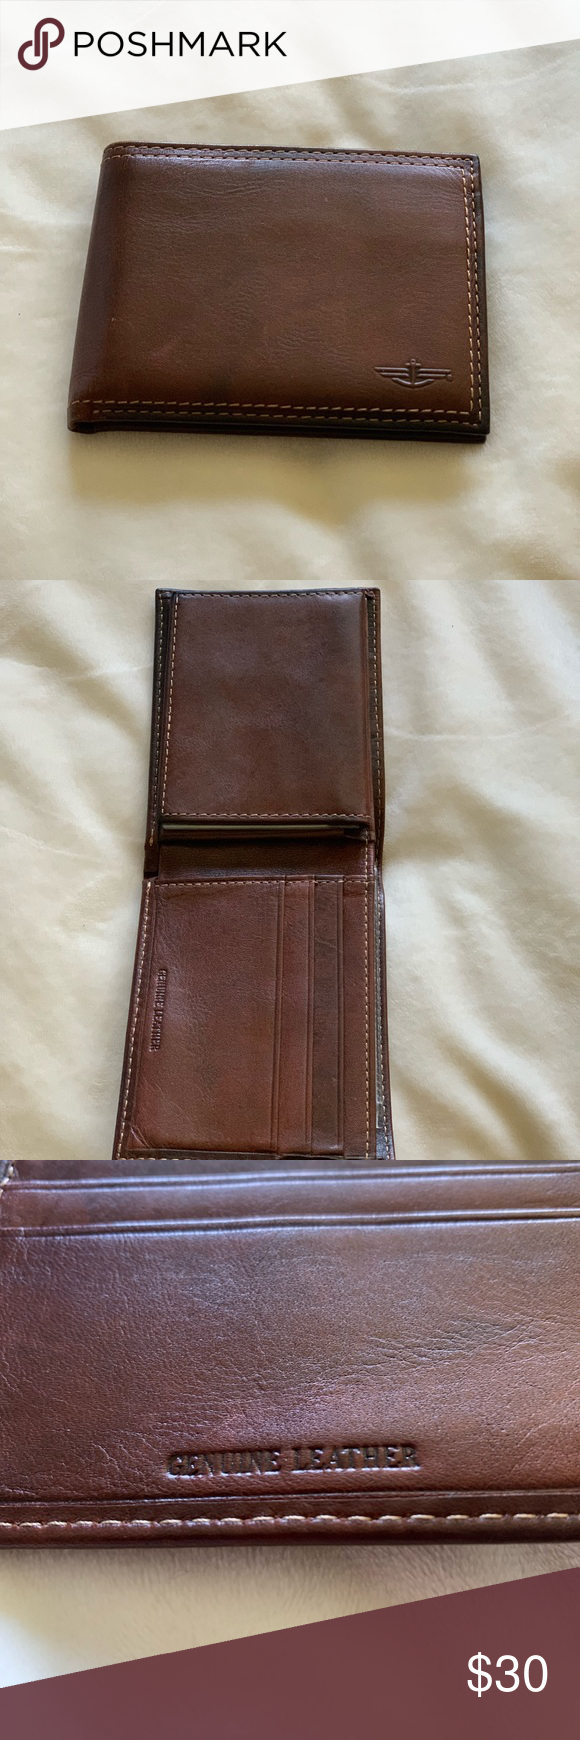 Brand new Dockers wallet with card holder A brand new